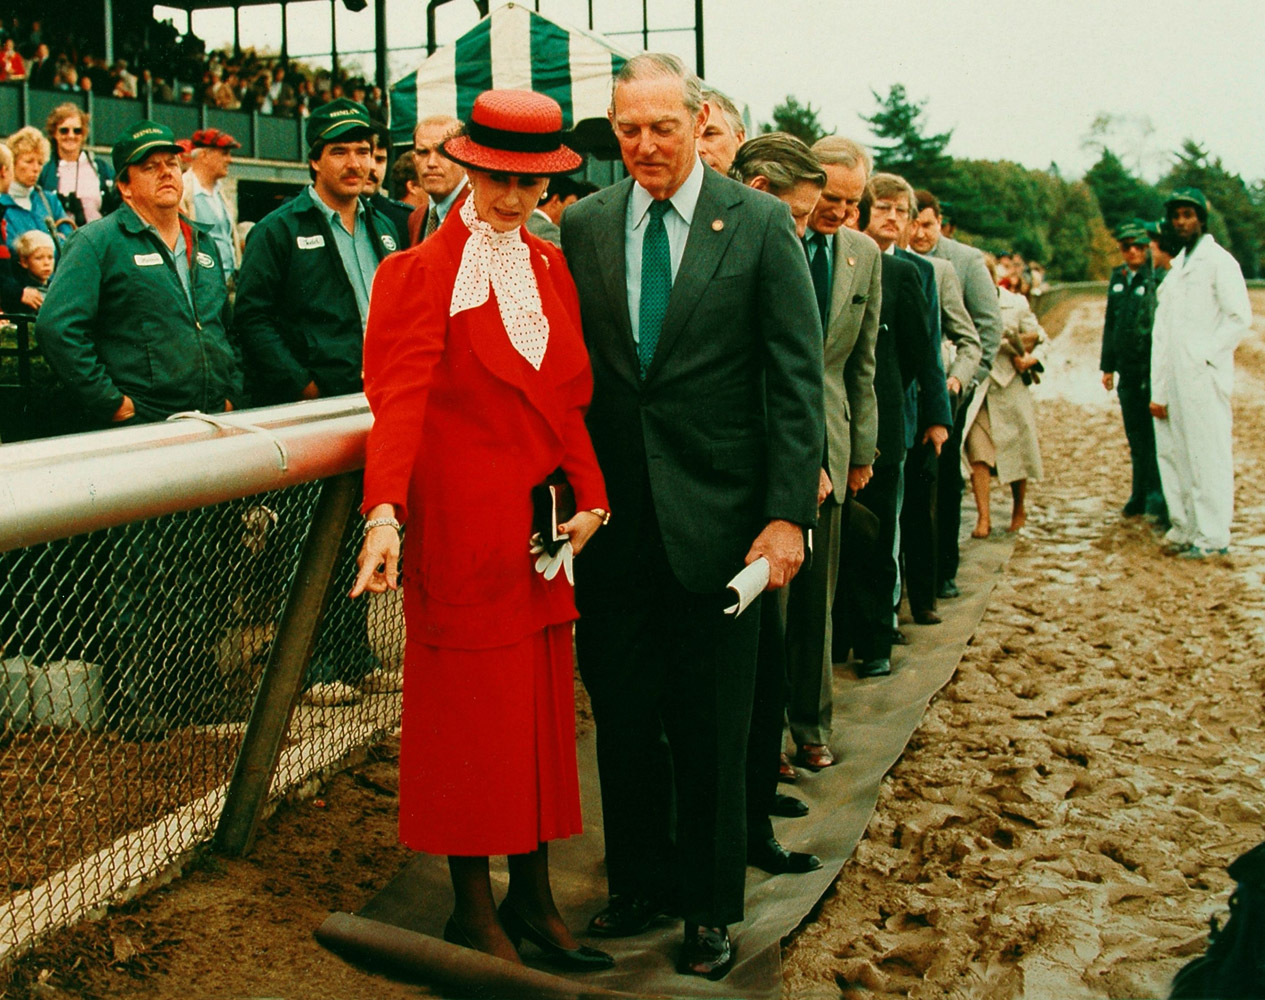 Princess Alexandra Helen Elizabeth Olga Christabel, the Honourable Lady Ogilvy, and Ted Bassett at the 1986 Queen Elizabeth II Challenge Cup (Keeneland Association)